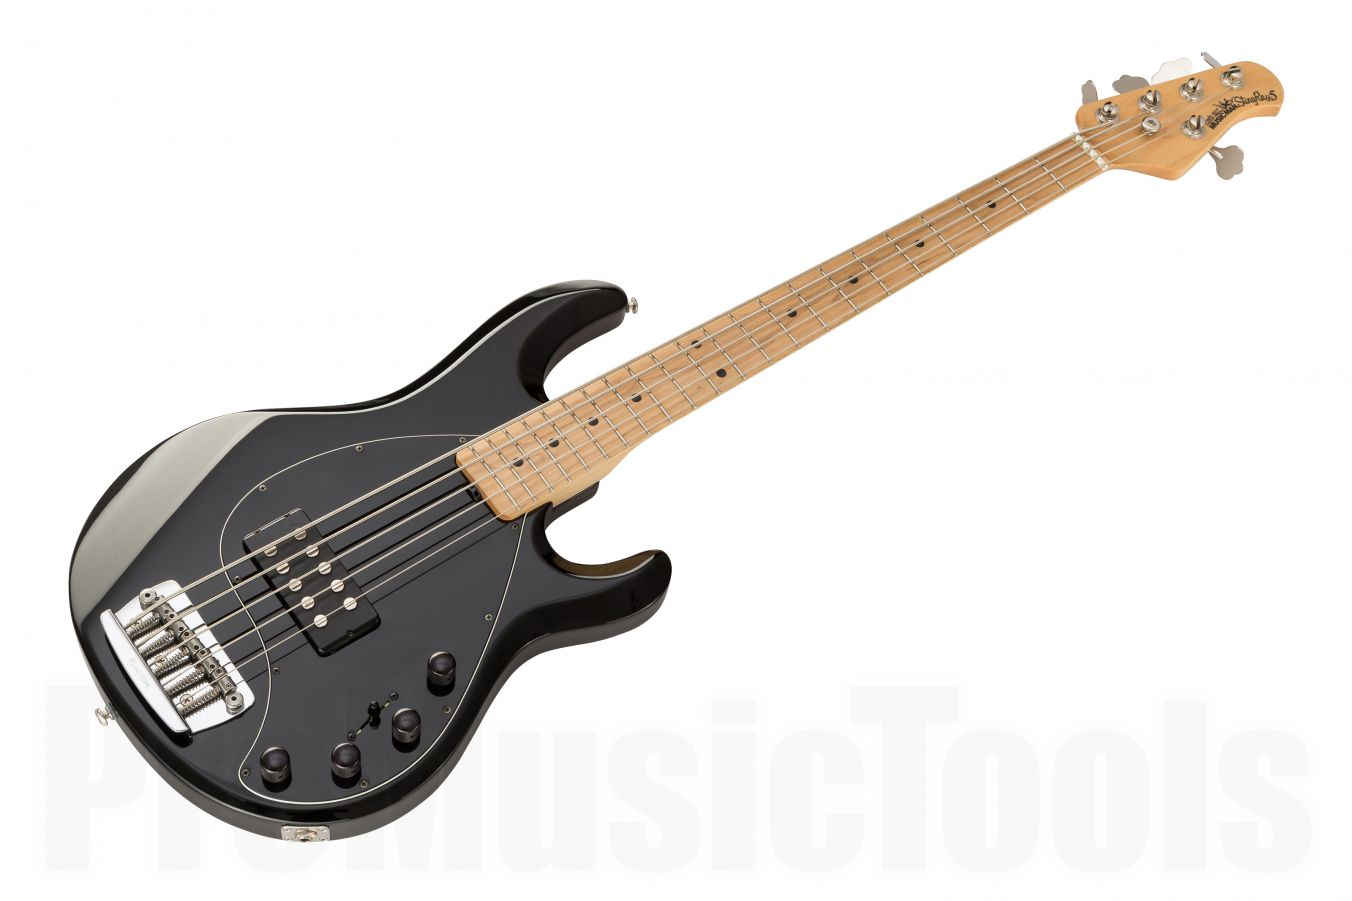 Music Man USA Stingray 5 BK - Black MN - 1-pc body